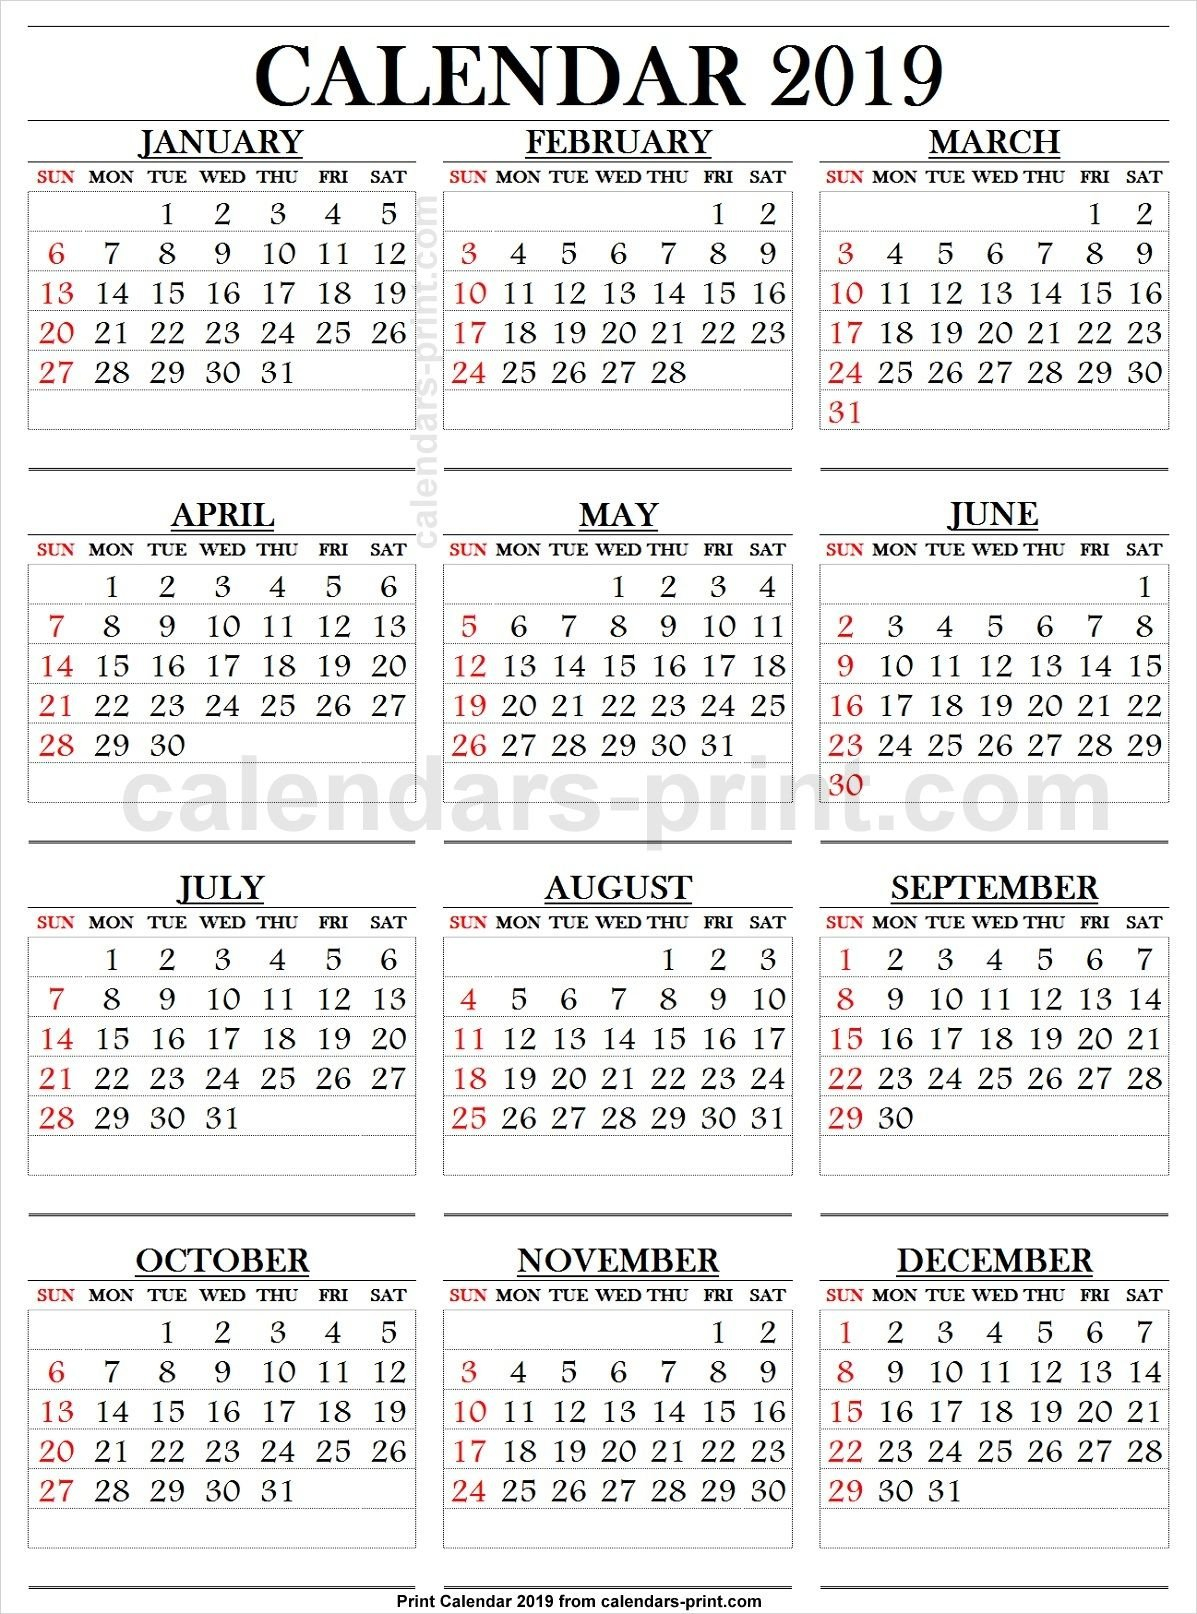 2019 Calendar Large Numbers (With Images) | 2019 Calendar Large Printable Numbers For Calendar